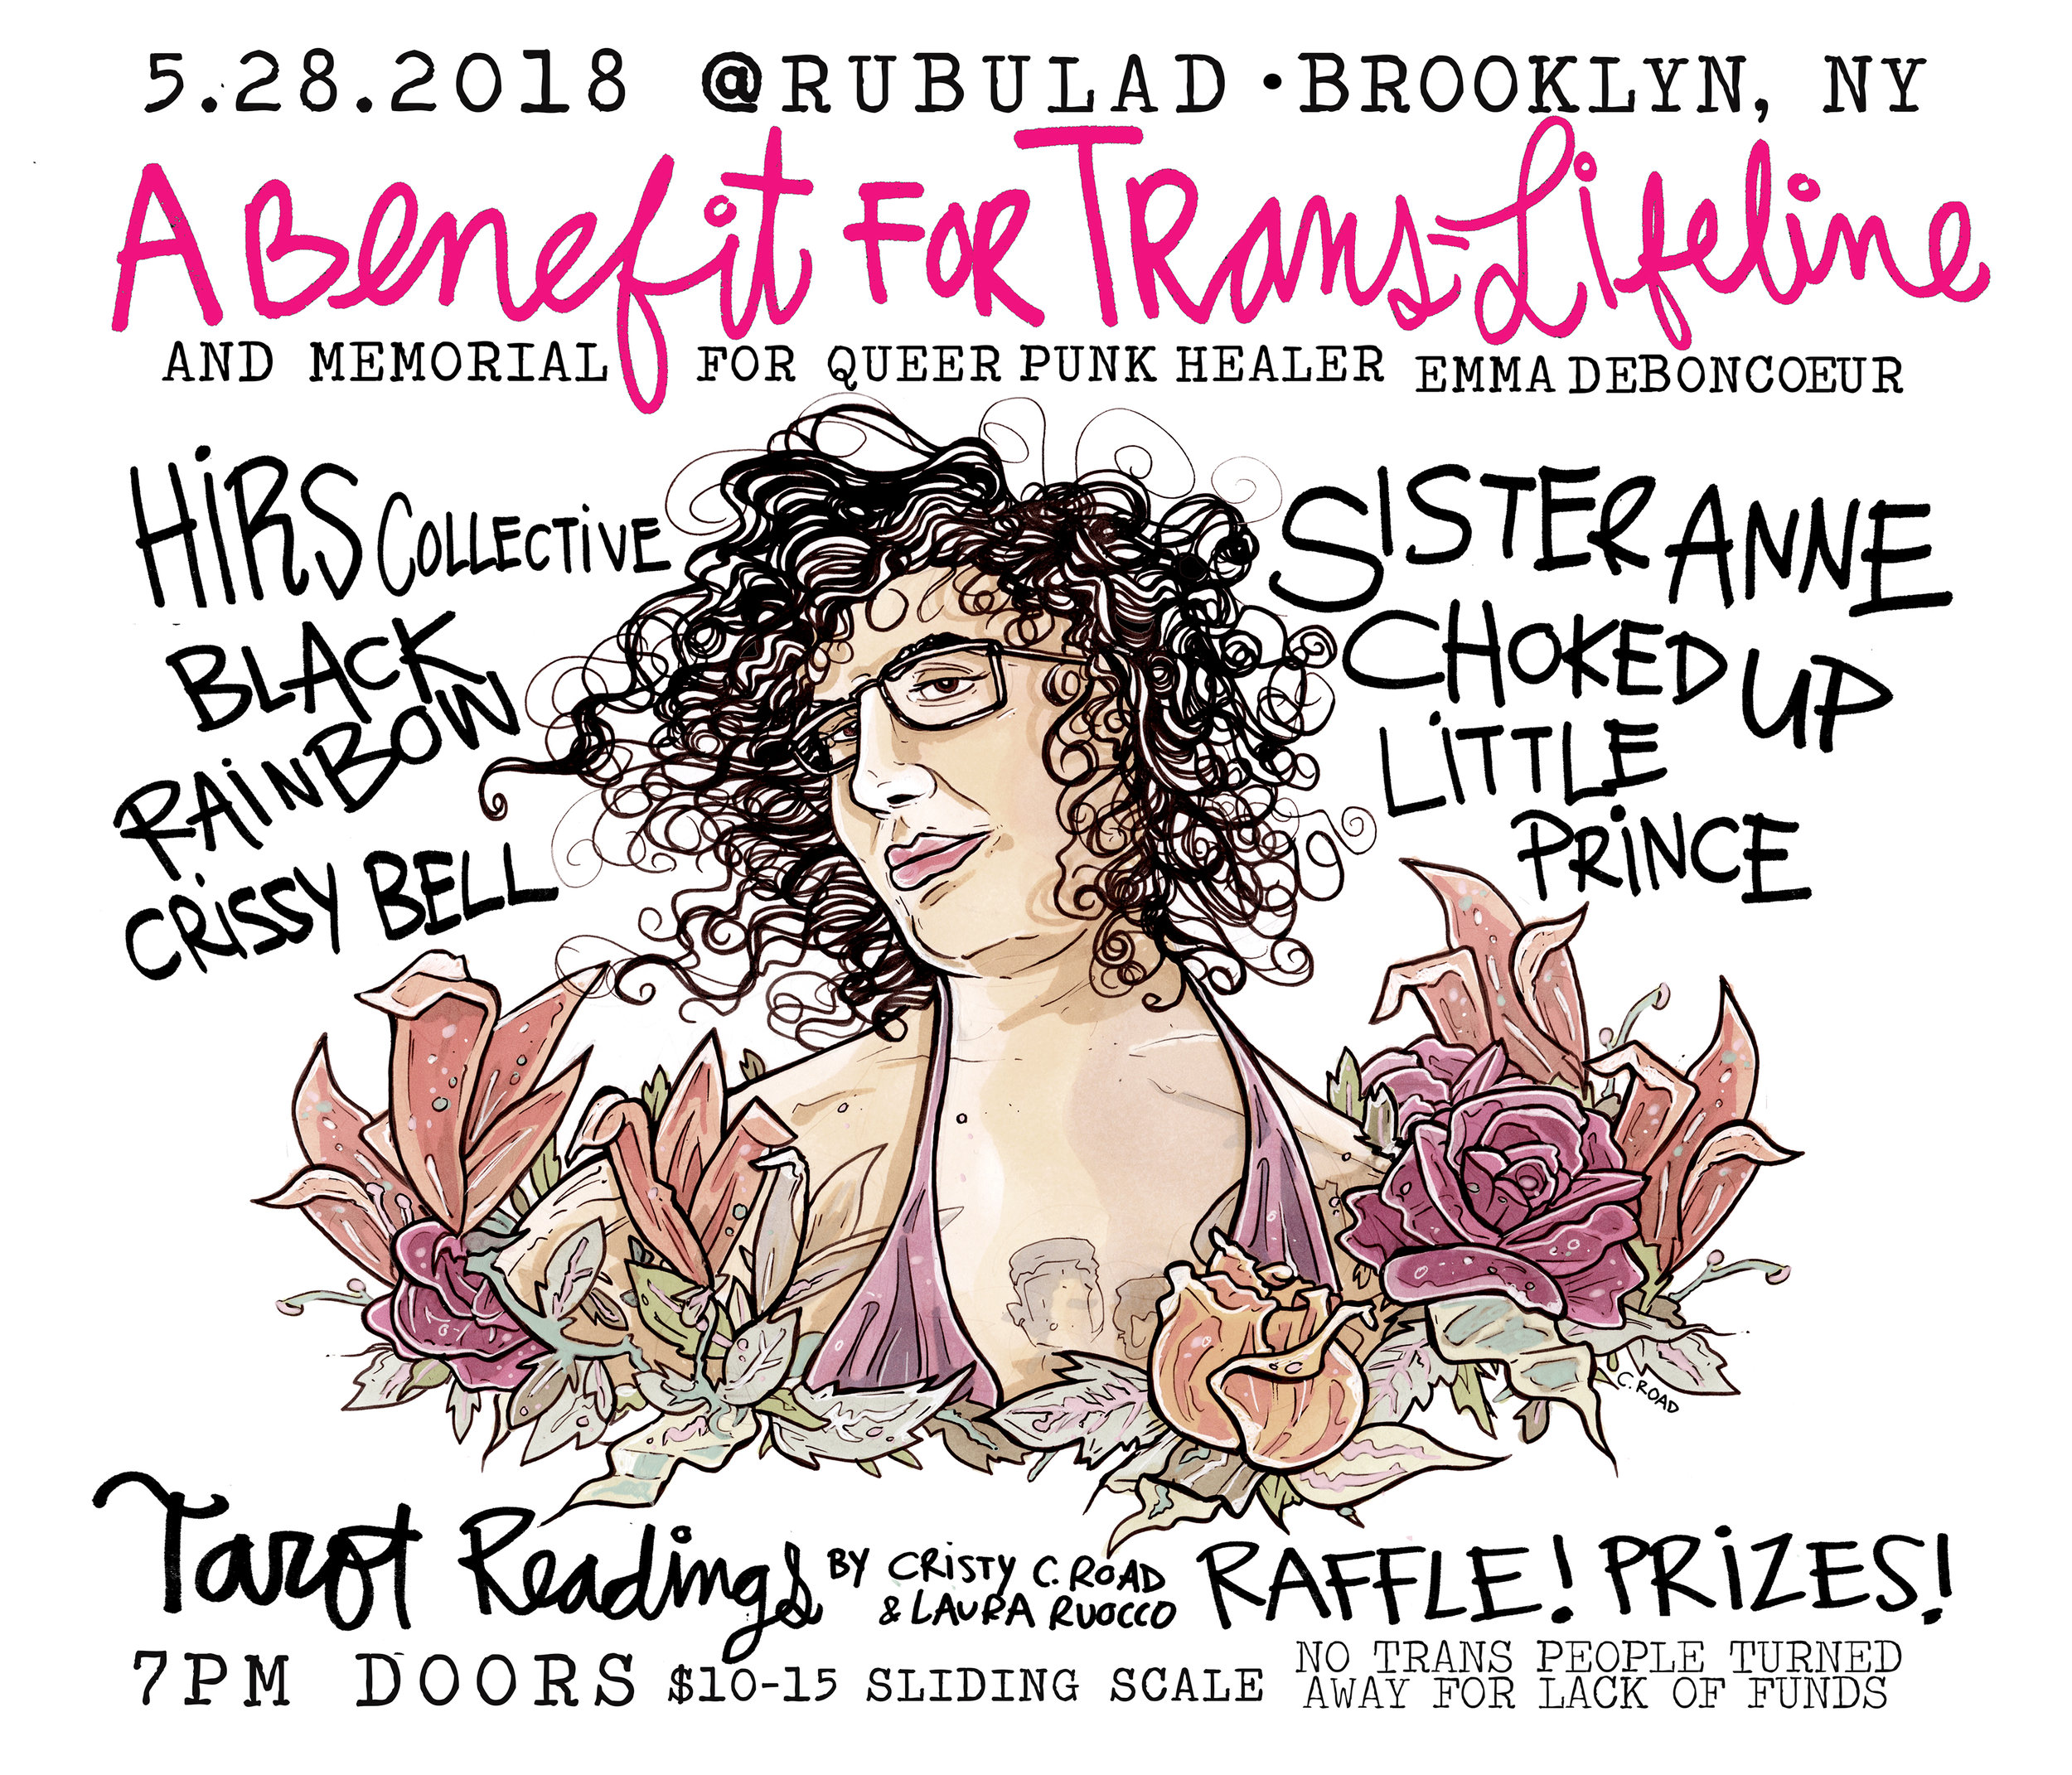 Flyer from last year's benefit for Trans Lifeline Project with art by Cristy Road